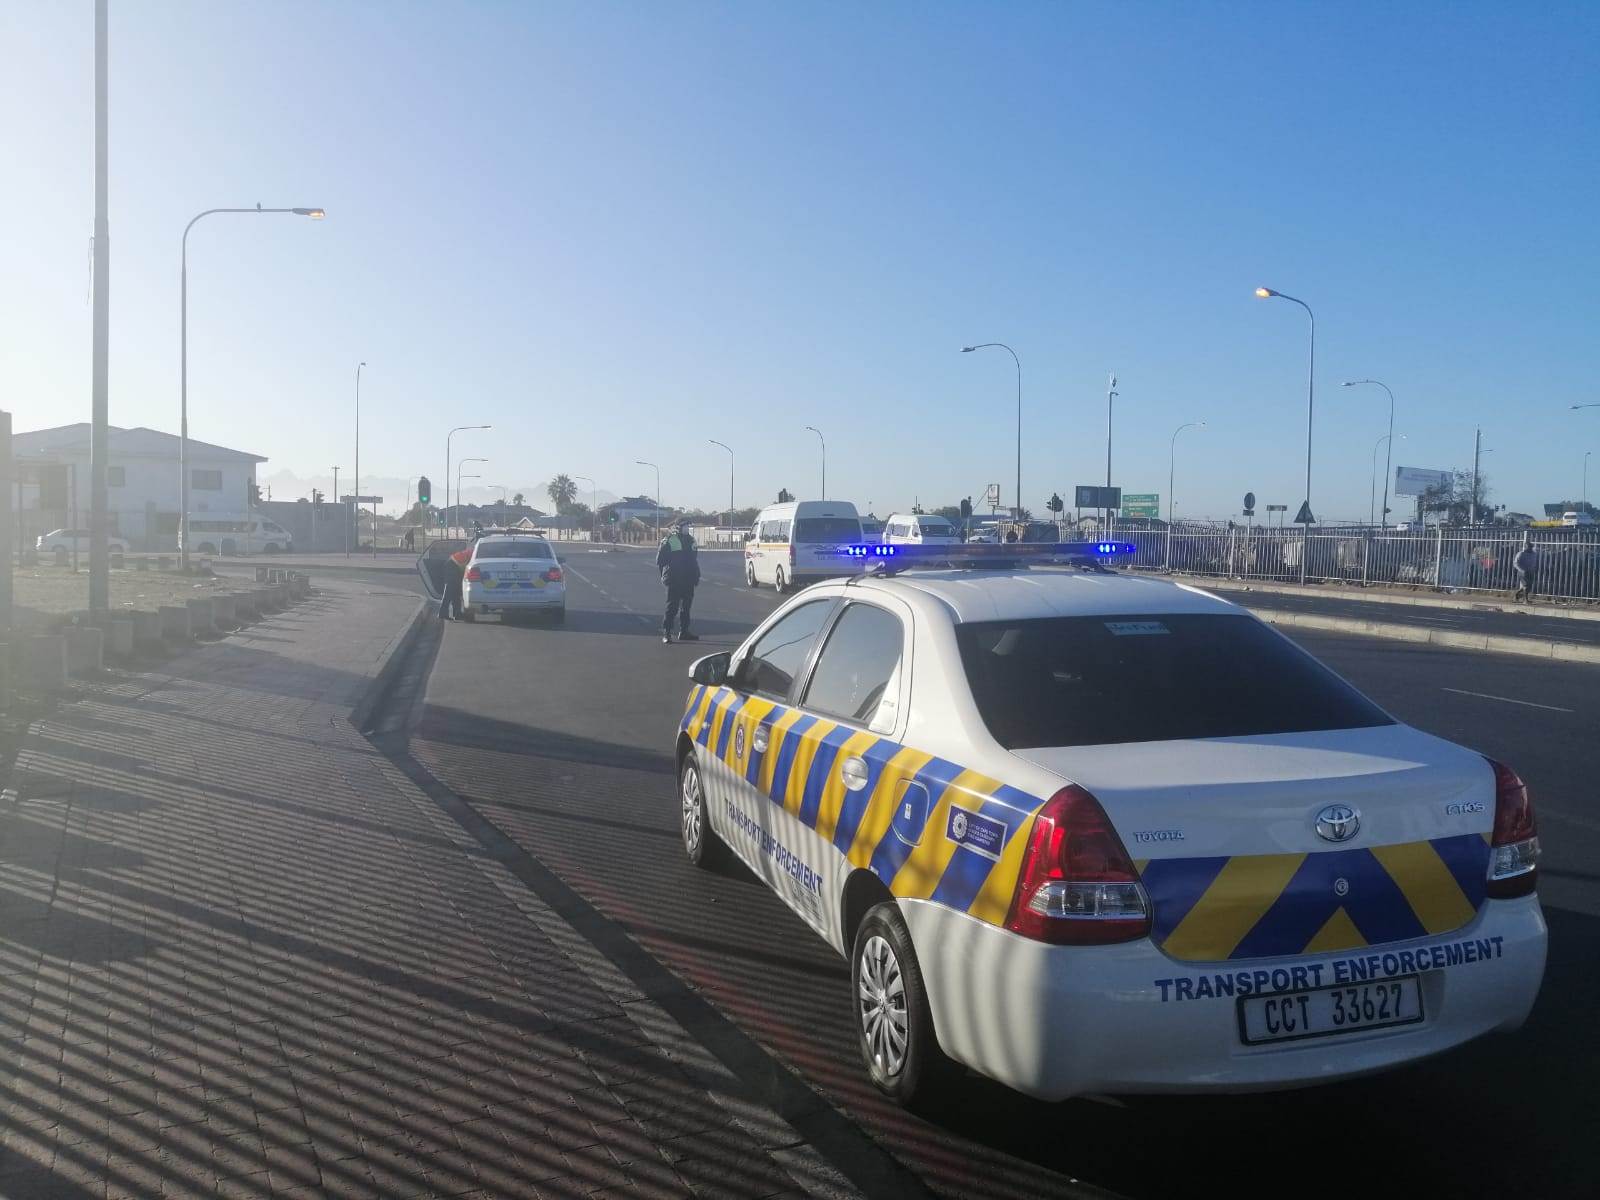 Metro Police keeping an eye on taxis in the Western Cape.